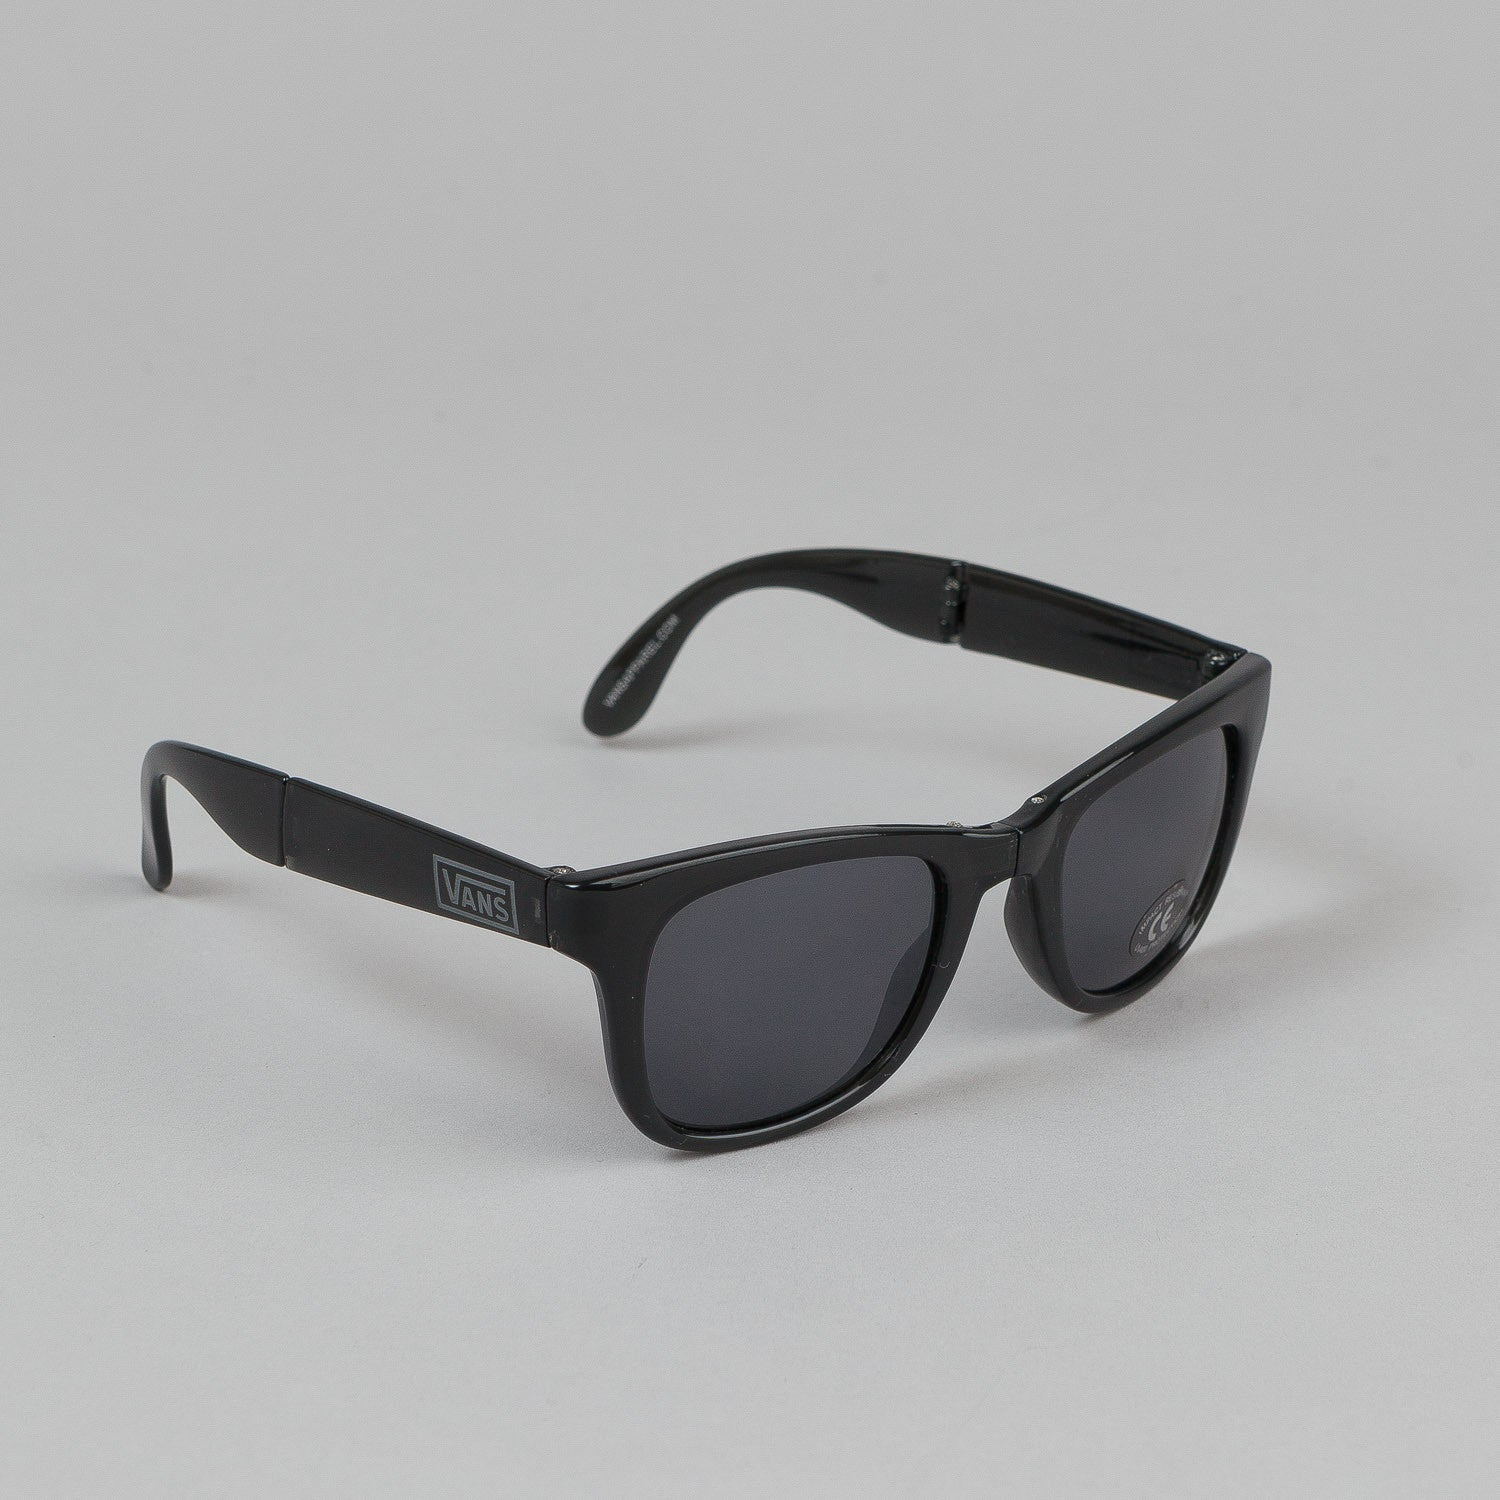 Vans Folding Spicoli Sunglasses - Transparent Black